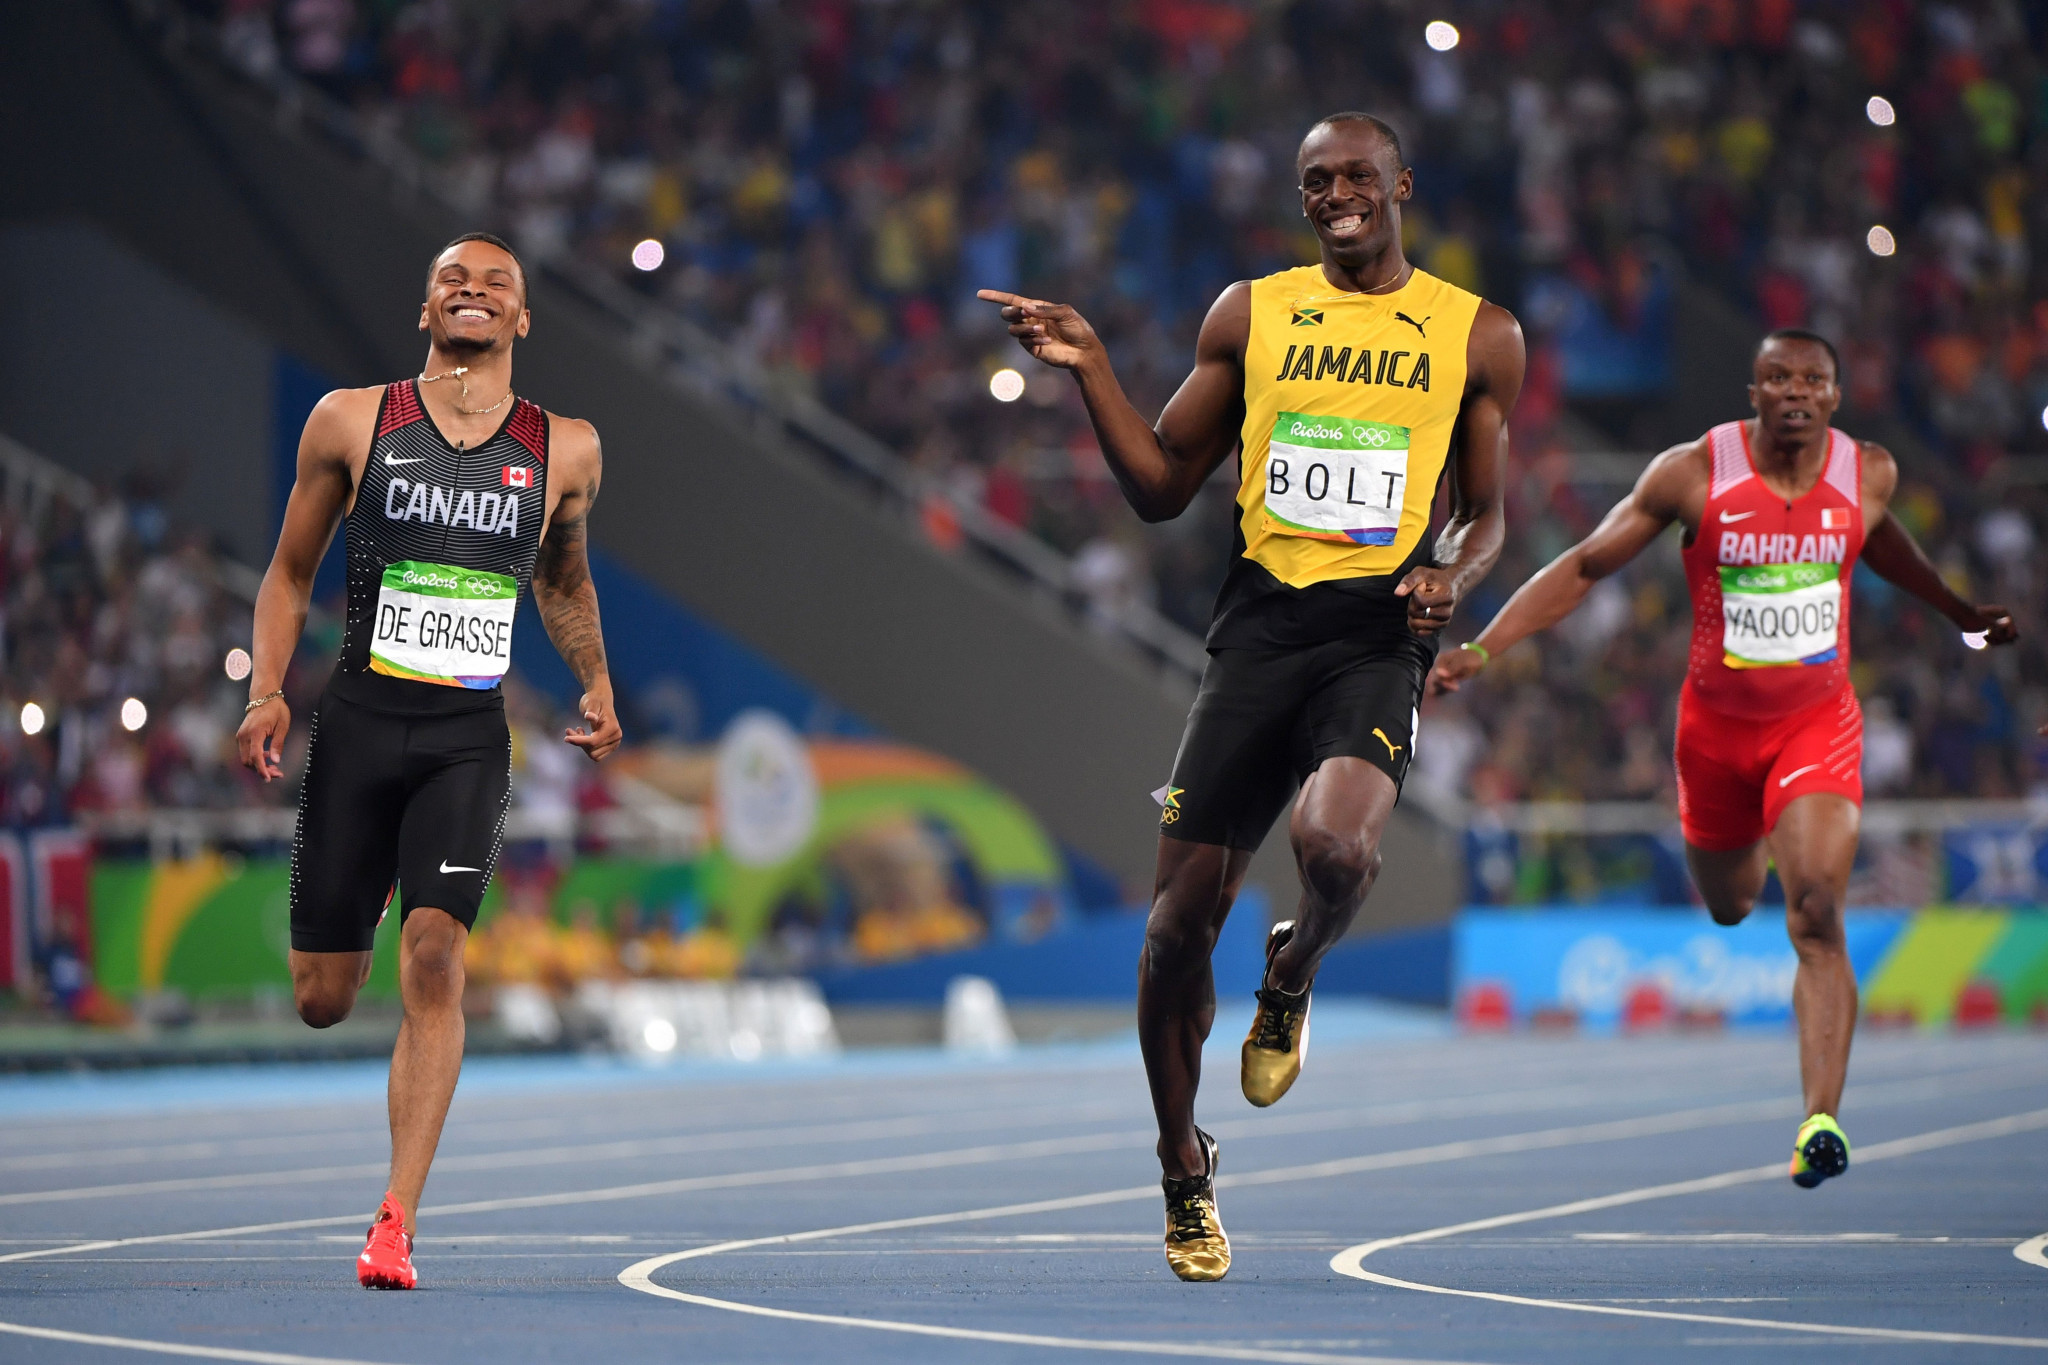 Andre De Grasse finished second behind Jamaican sprint king Usain Bolt in the 200m final at the Rio 2016 Olympic Games ©Getty Images